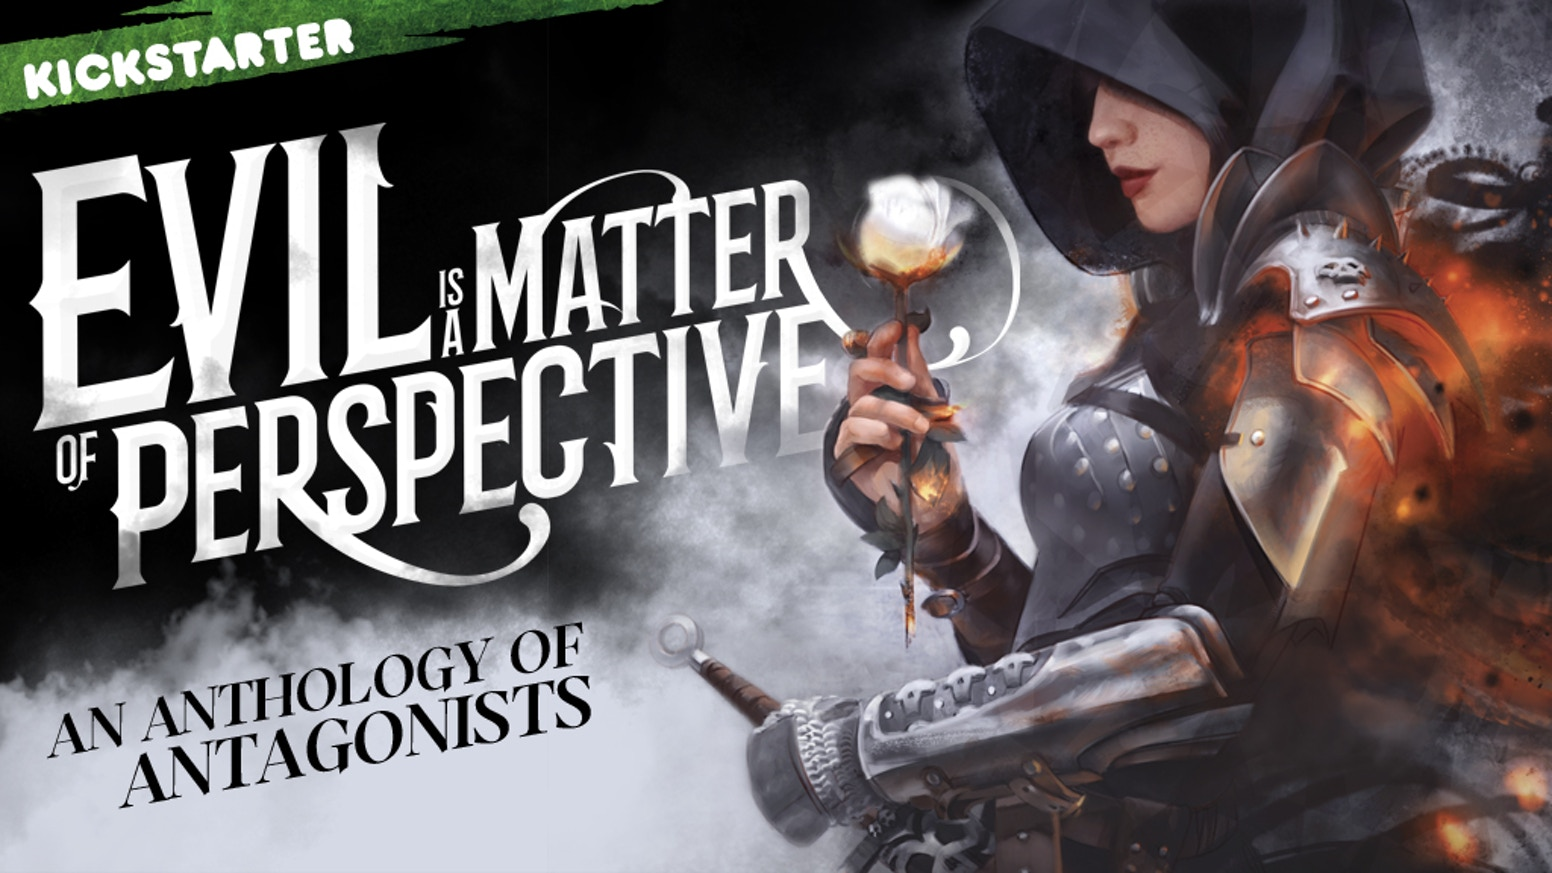 See the world through the eyes of your favourite antagonists in the EVIL IS A MATTER OF PERSPECTIVE anthology.